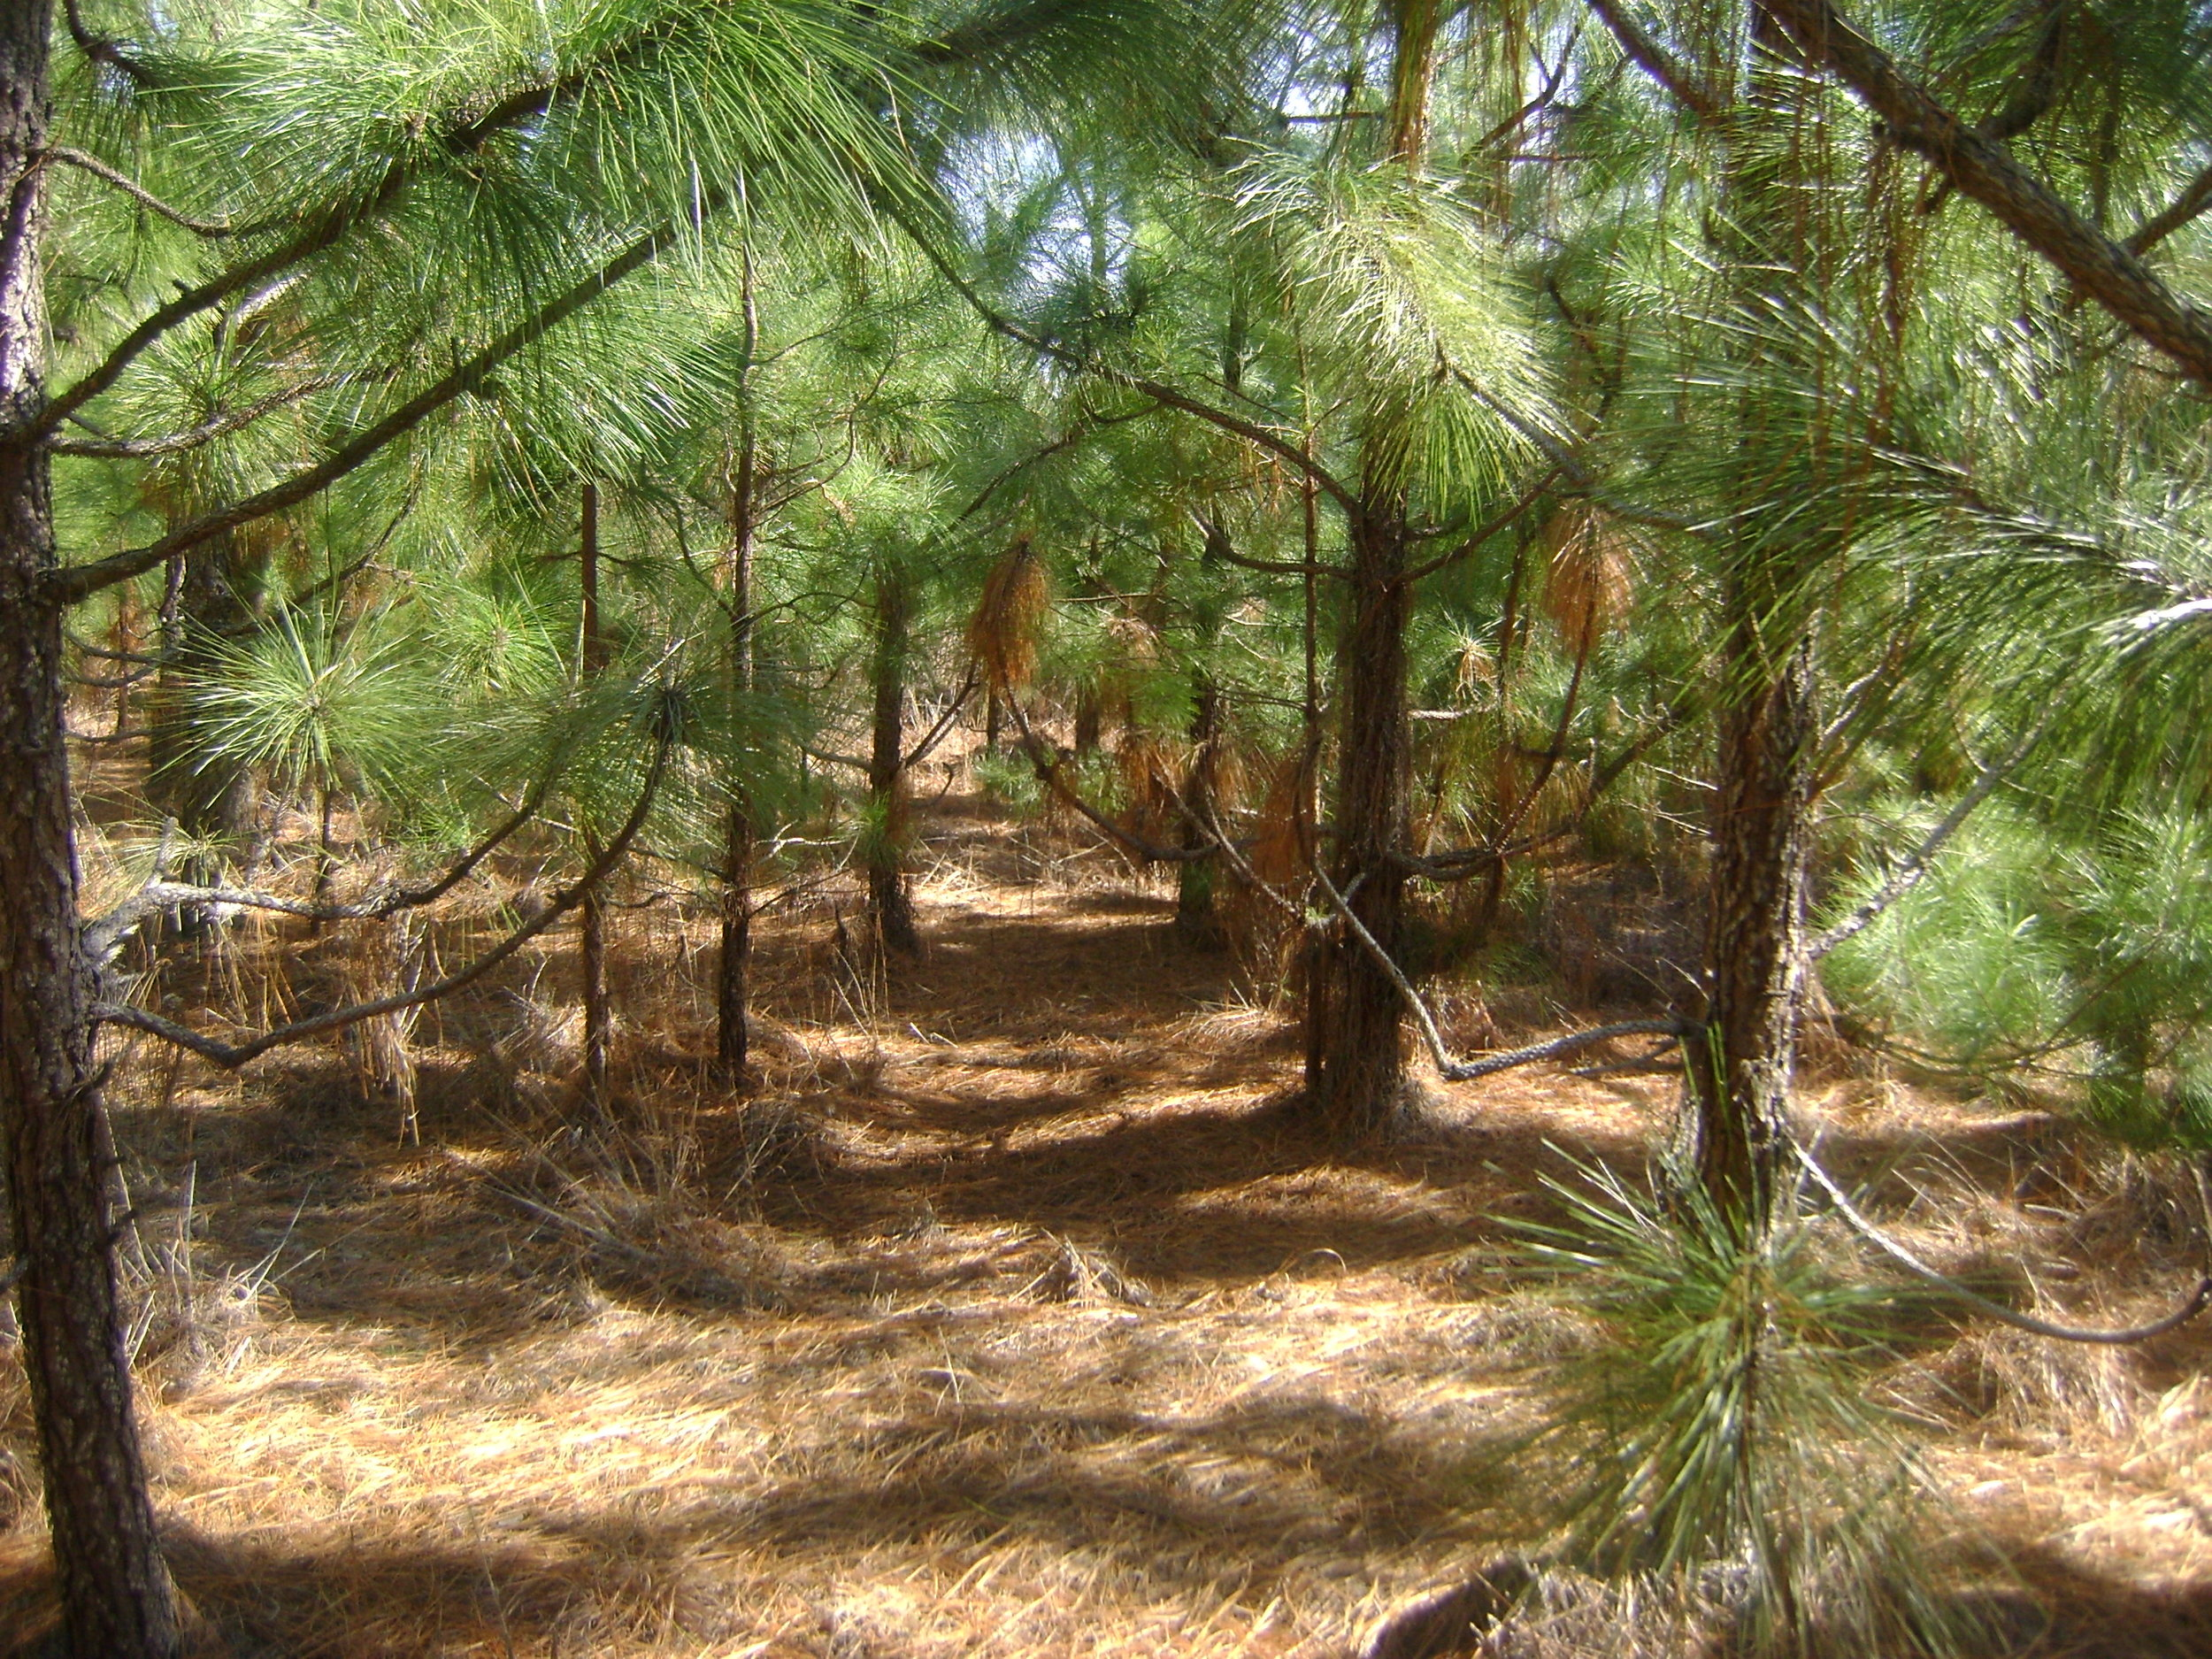 A field of Long Leaf Pine Trees in the early stages of growth.